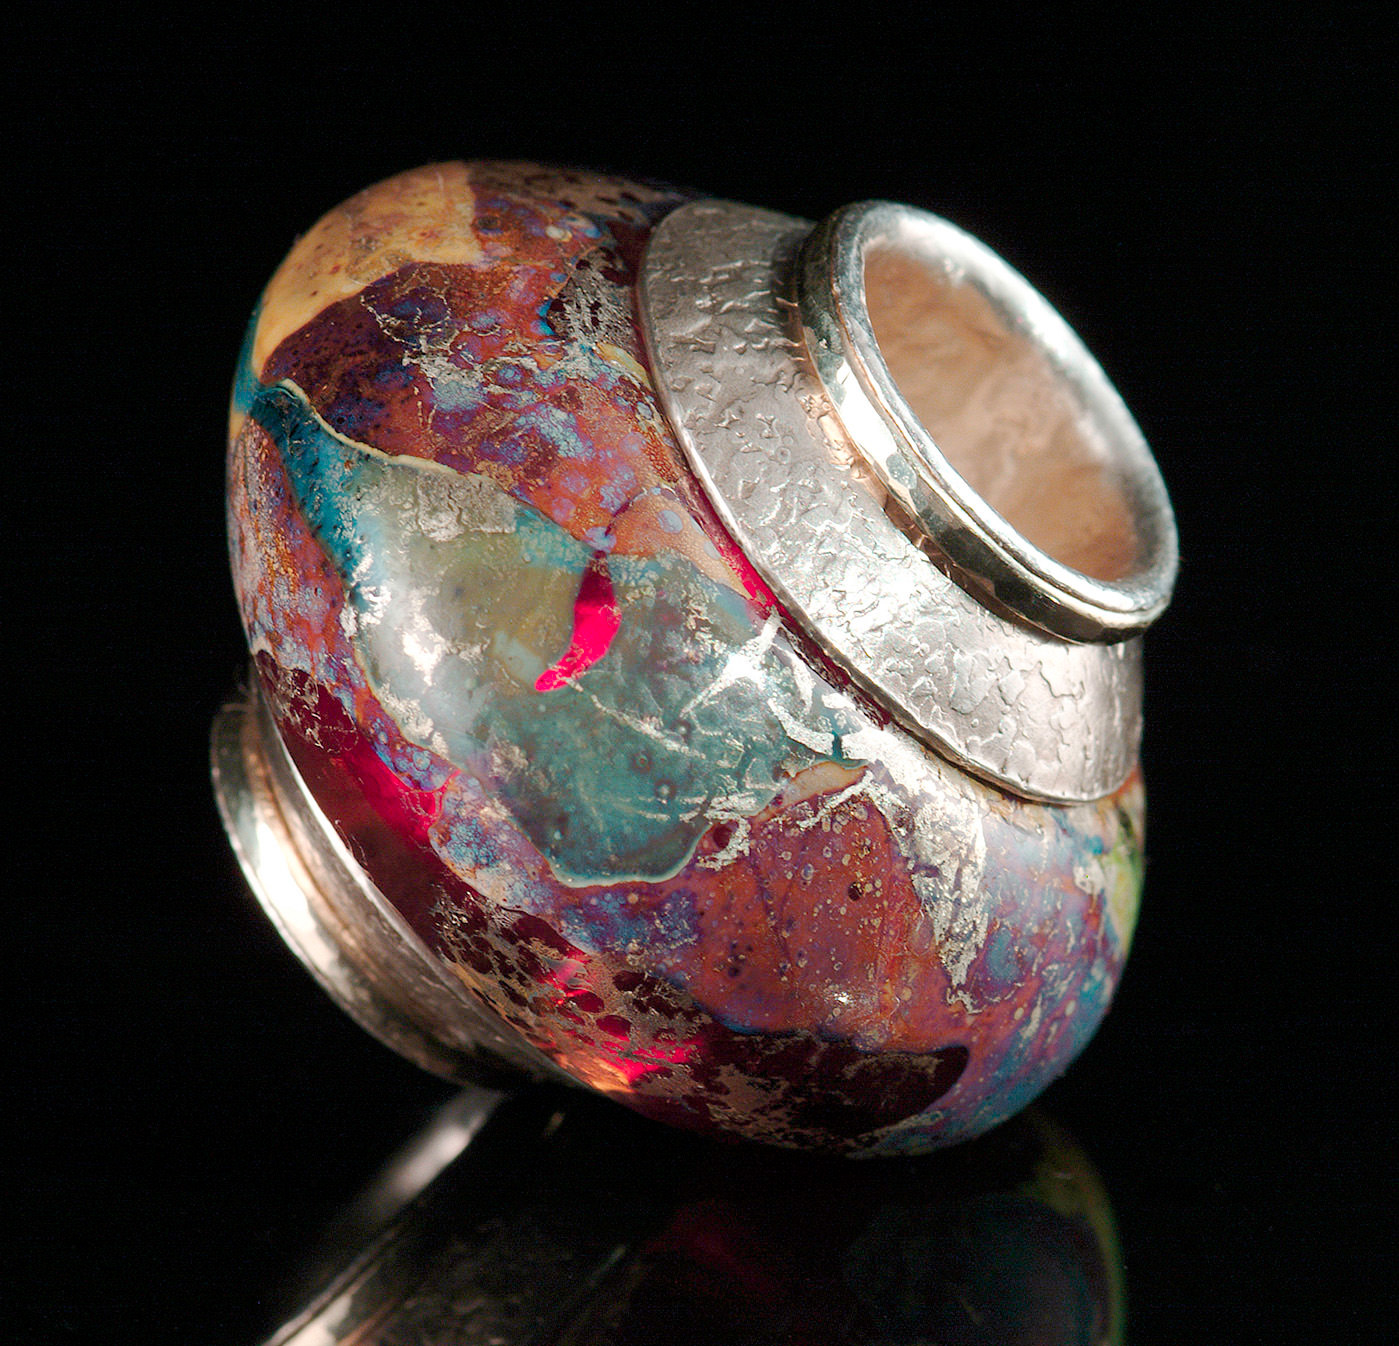 """""""Ruby Donut Bead"""", 2001, with fine silver and 14K gold. Beads in this series had very large holes and were given a high polish on the inside using diamond tools. A polished silver tube was set as a huge """"rivet"""", causing light to reflect through the transparent glass, illuminating the color from the inside. Bead is about 3.5 cm diameter."""